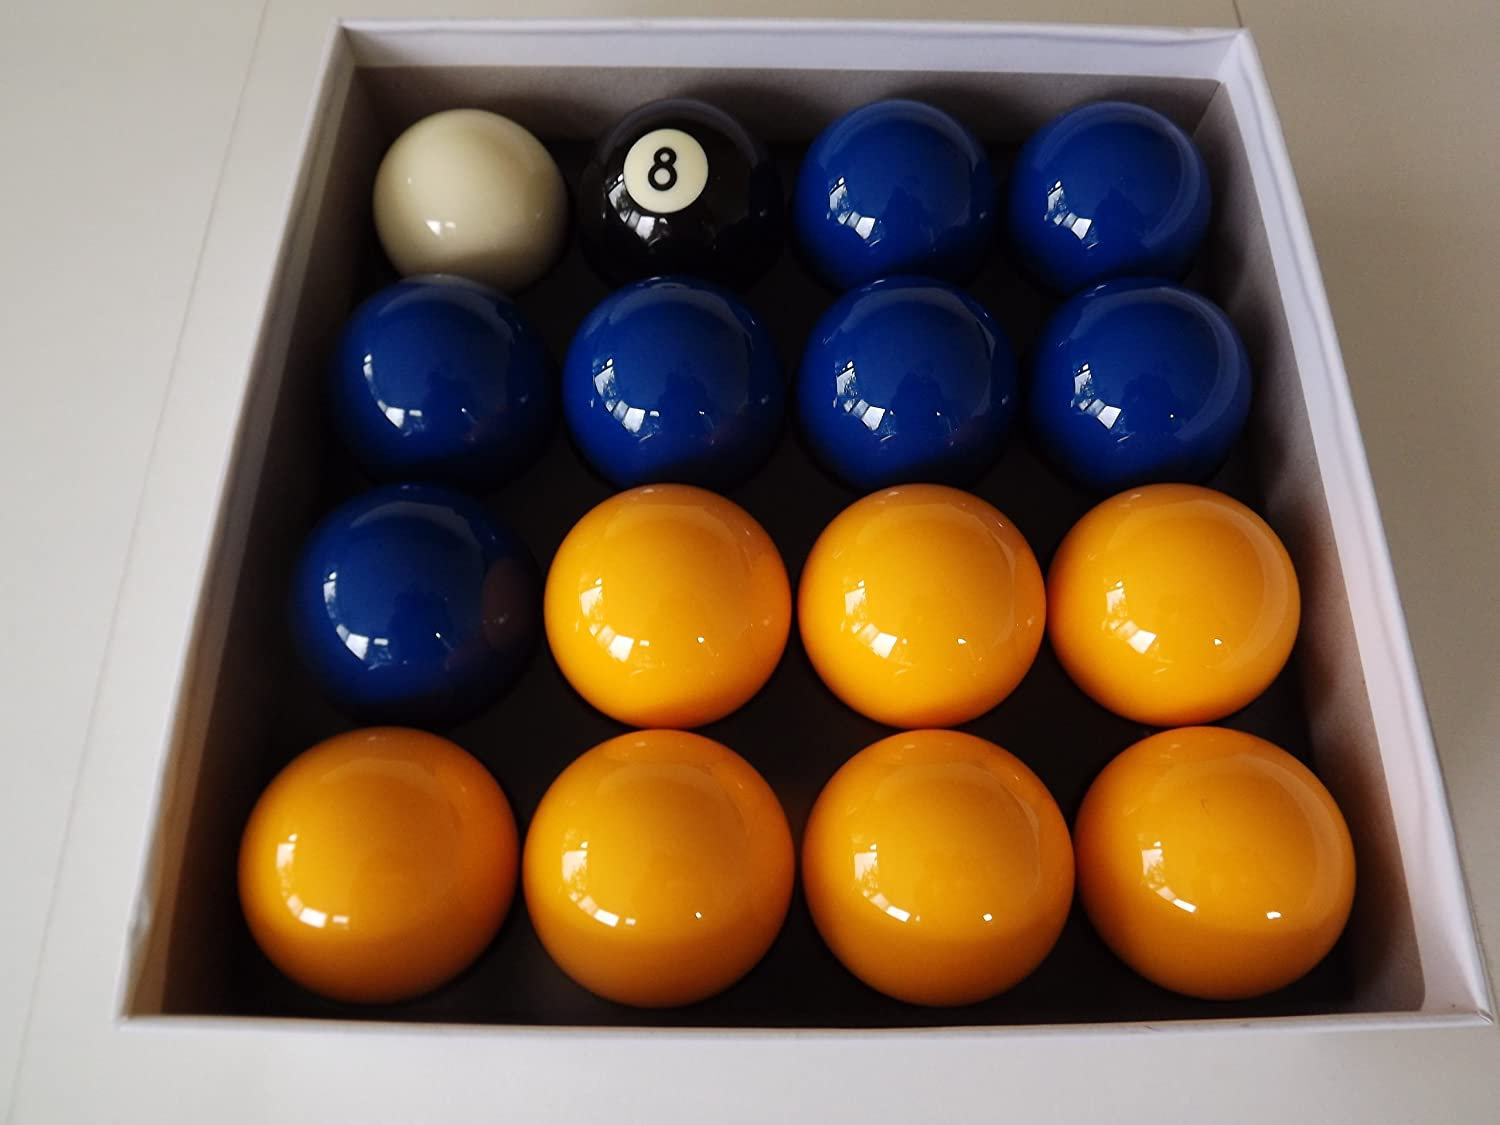 Blue and Yellow 2 Inch Pool Ball Set (1 7/8 Inch Cue Ball) Professional